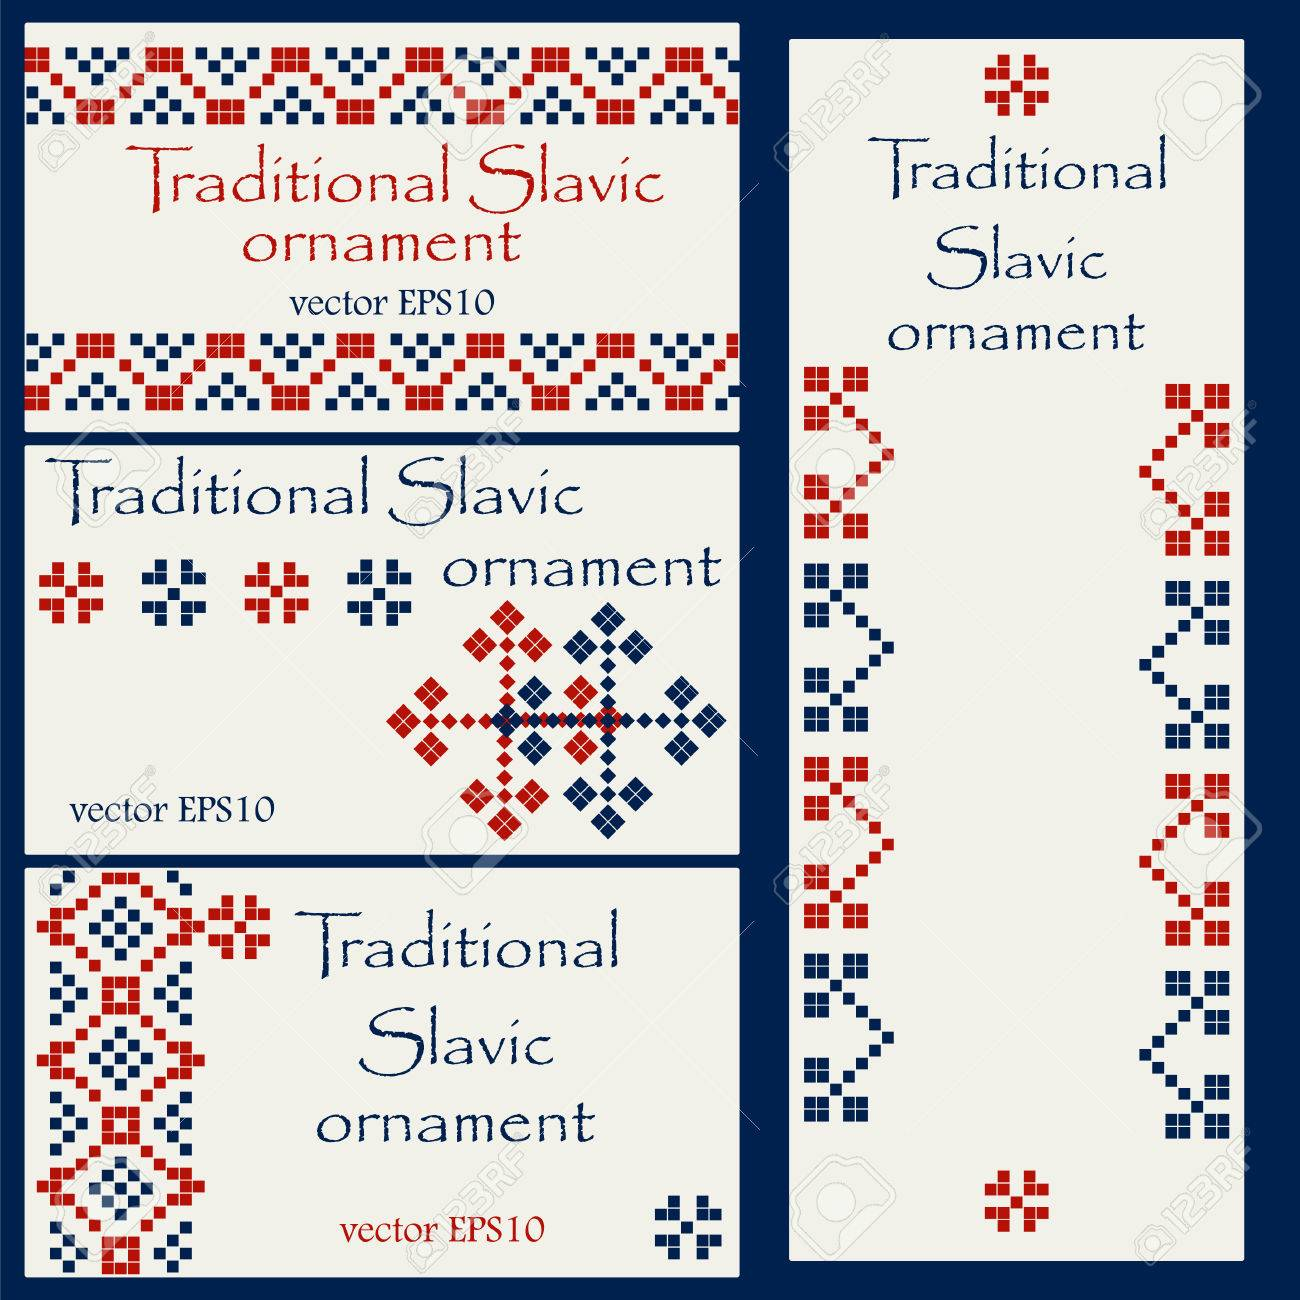 Business Card Templates With Traditional Slavic Ornament - For ...